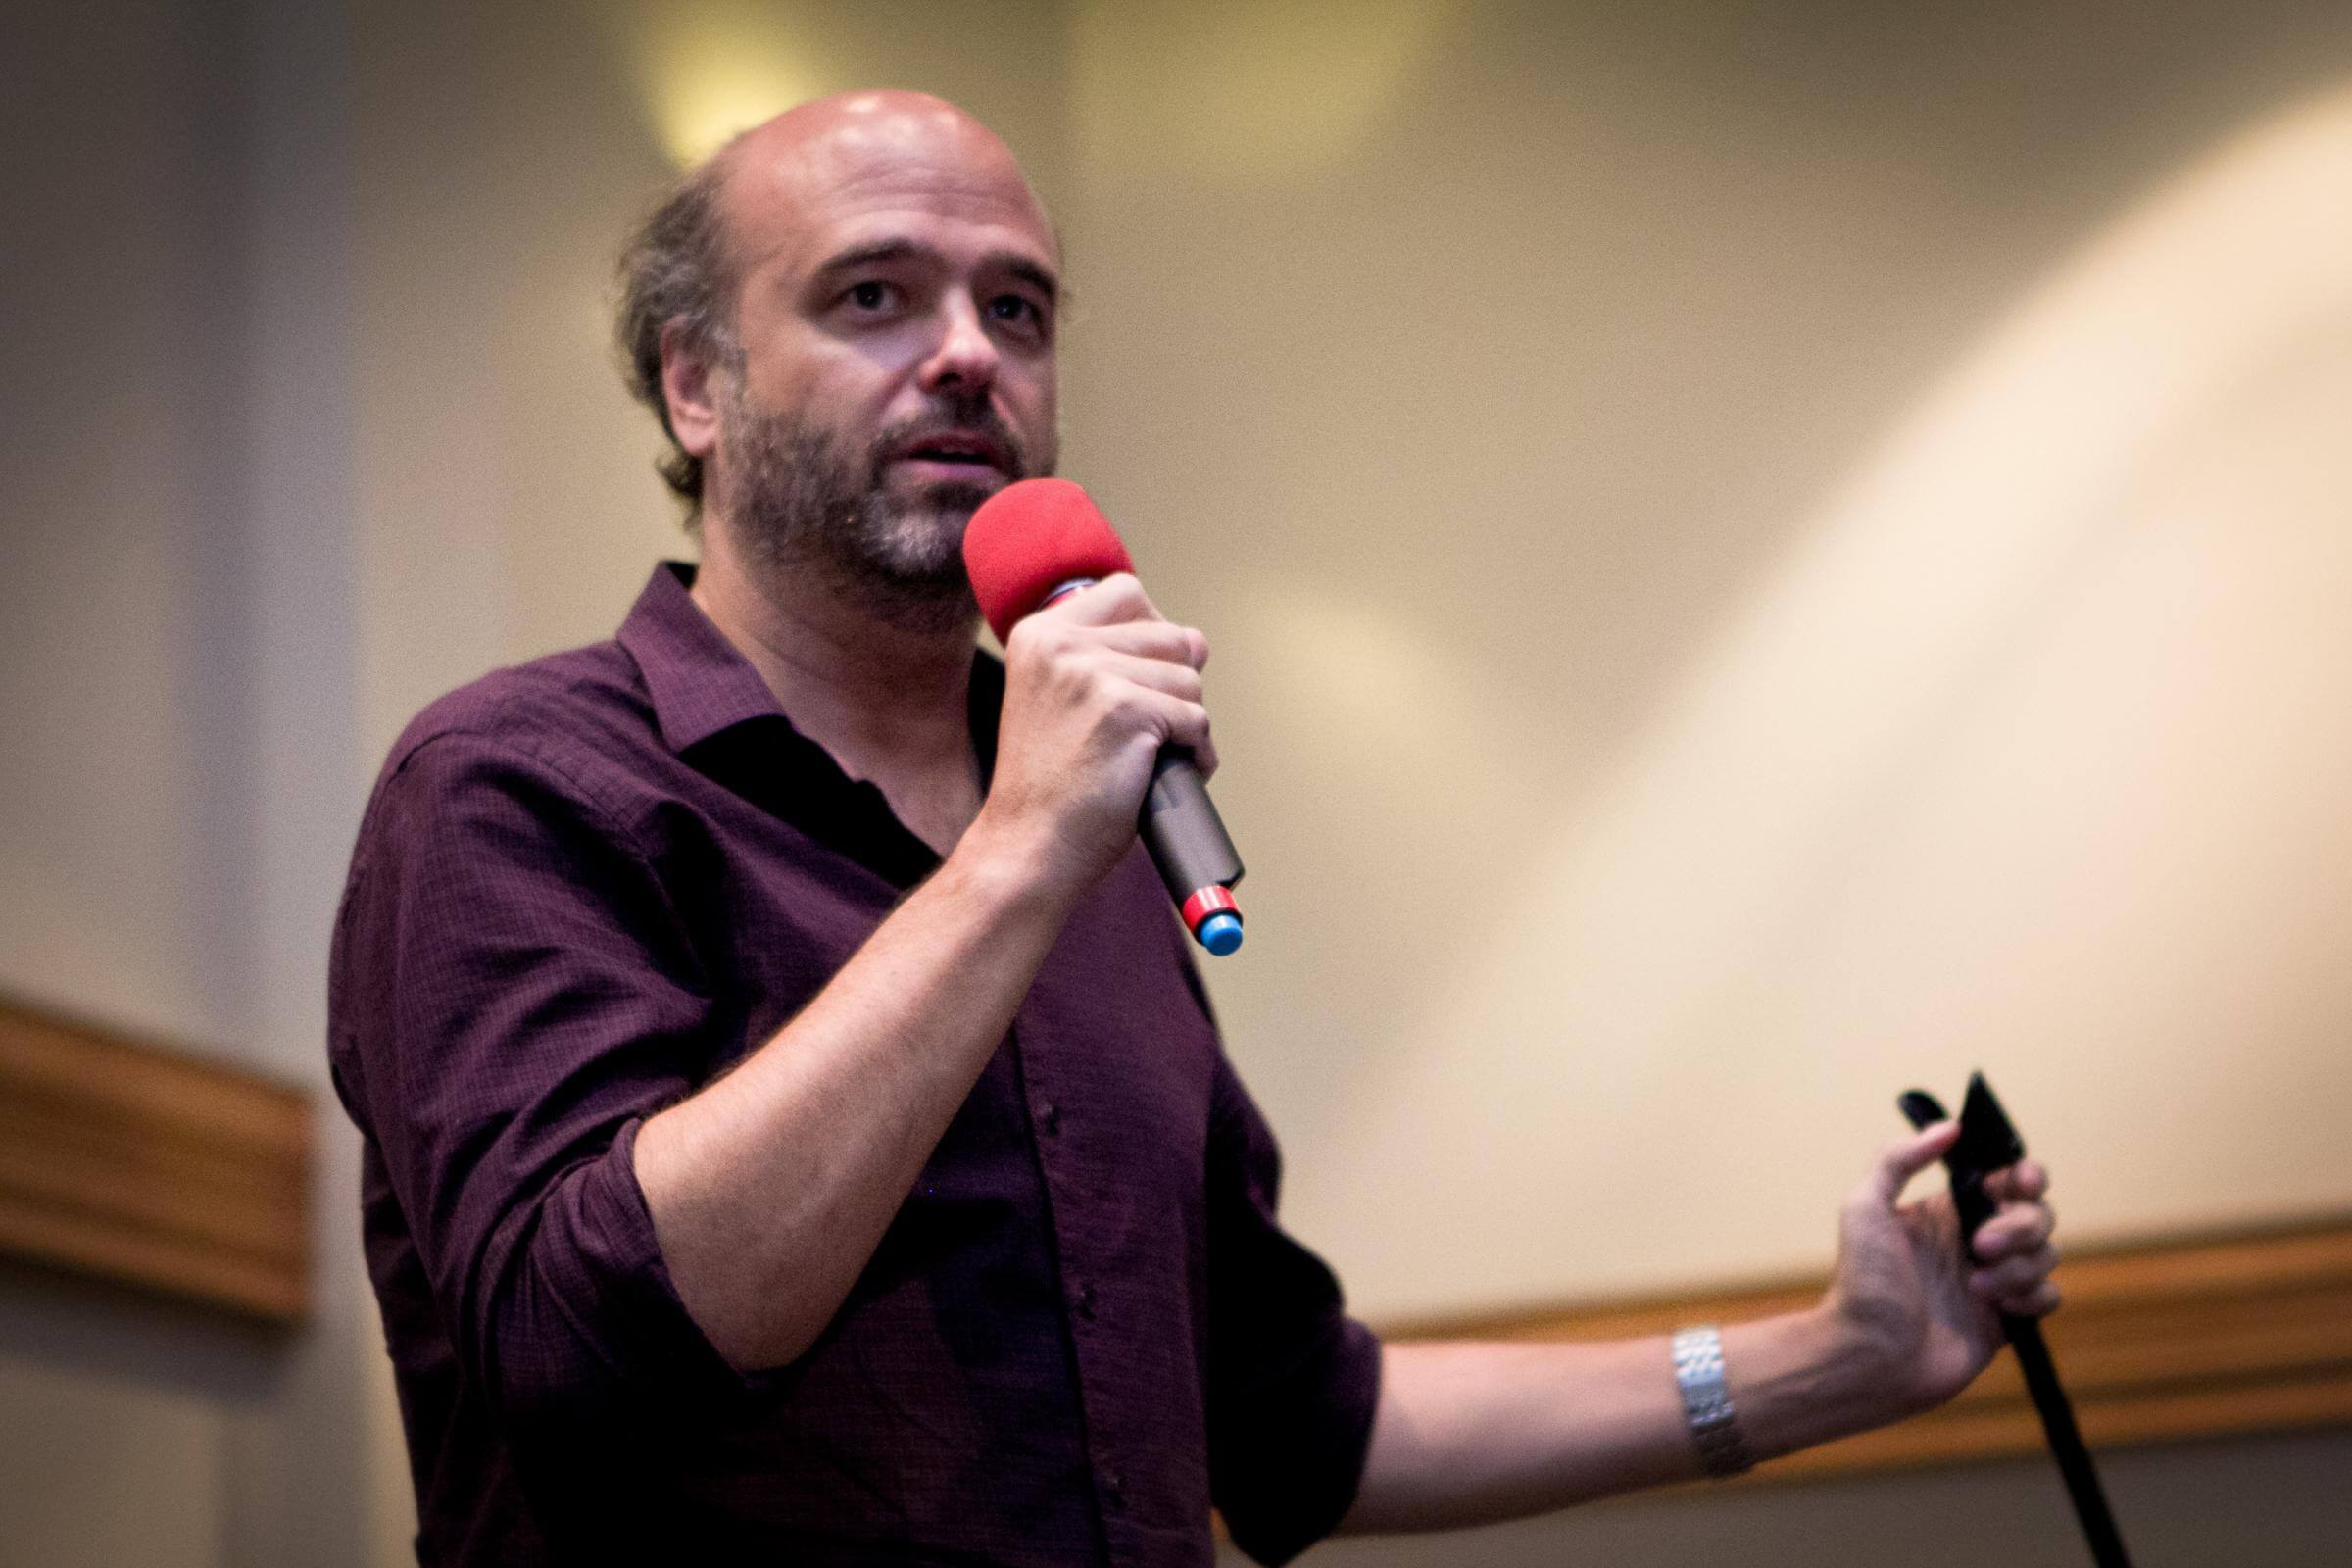 Scott Adsit Net Worth 4 - Scott Adsit Net Worth